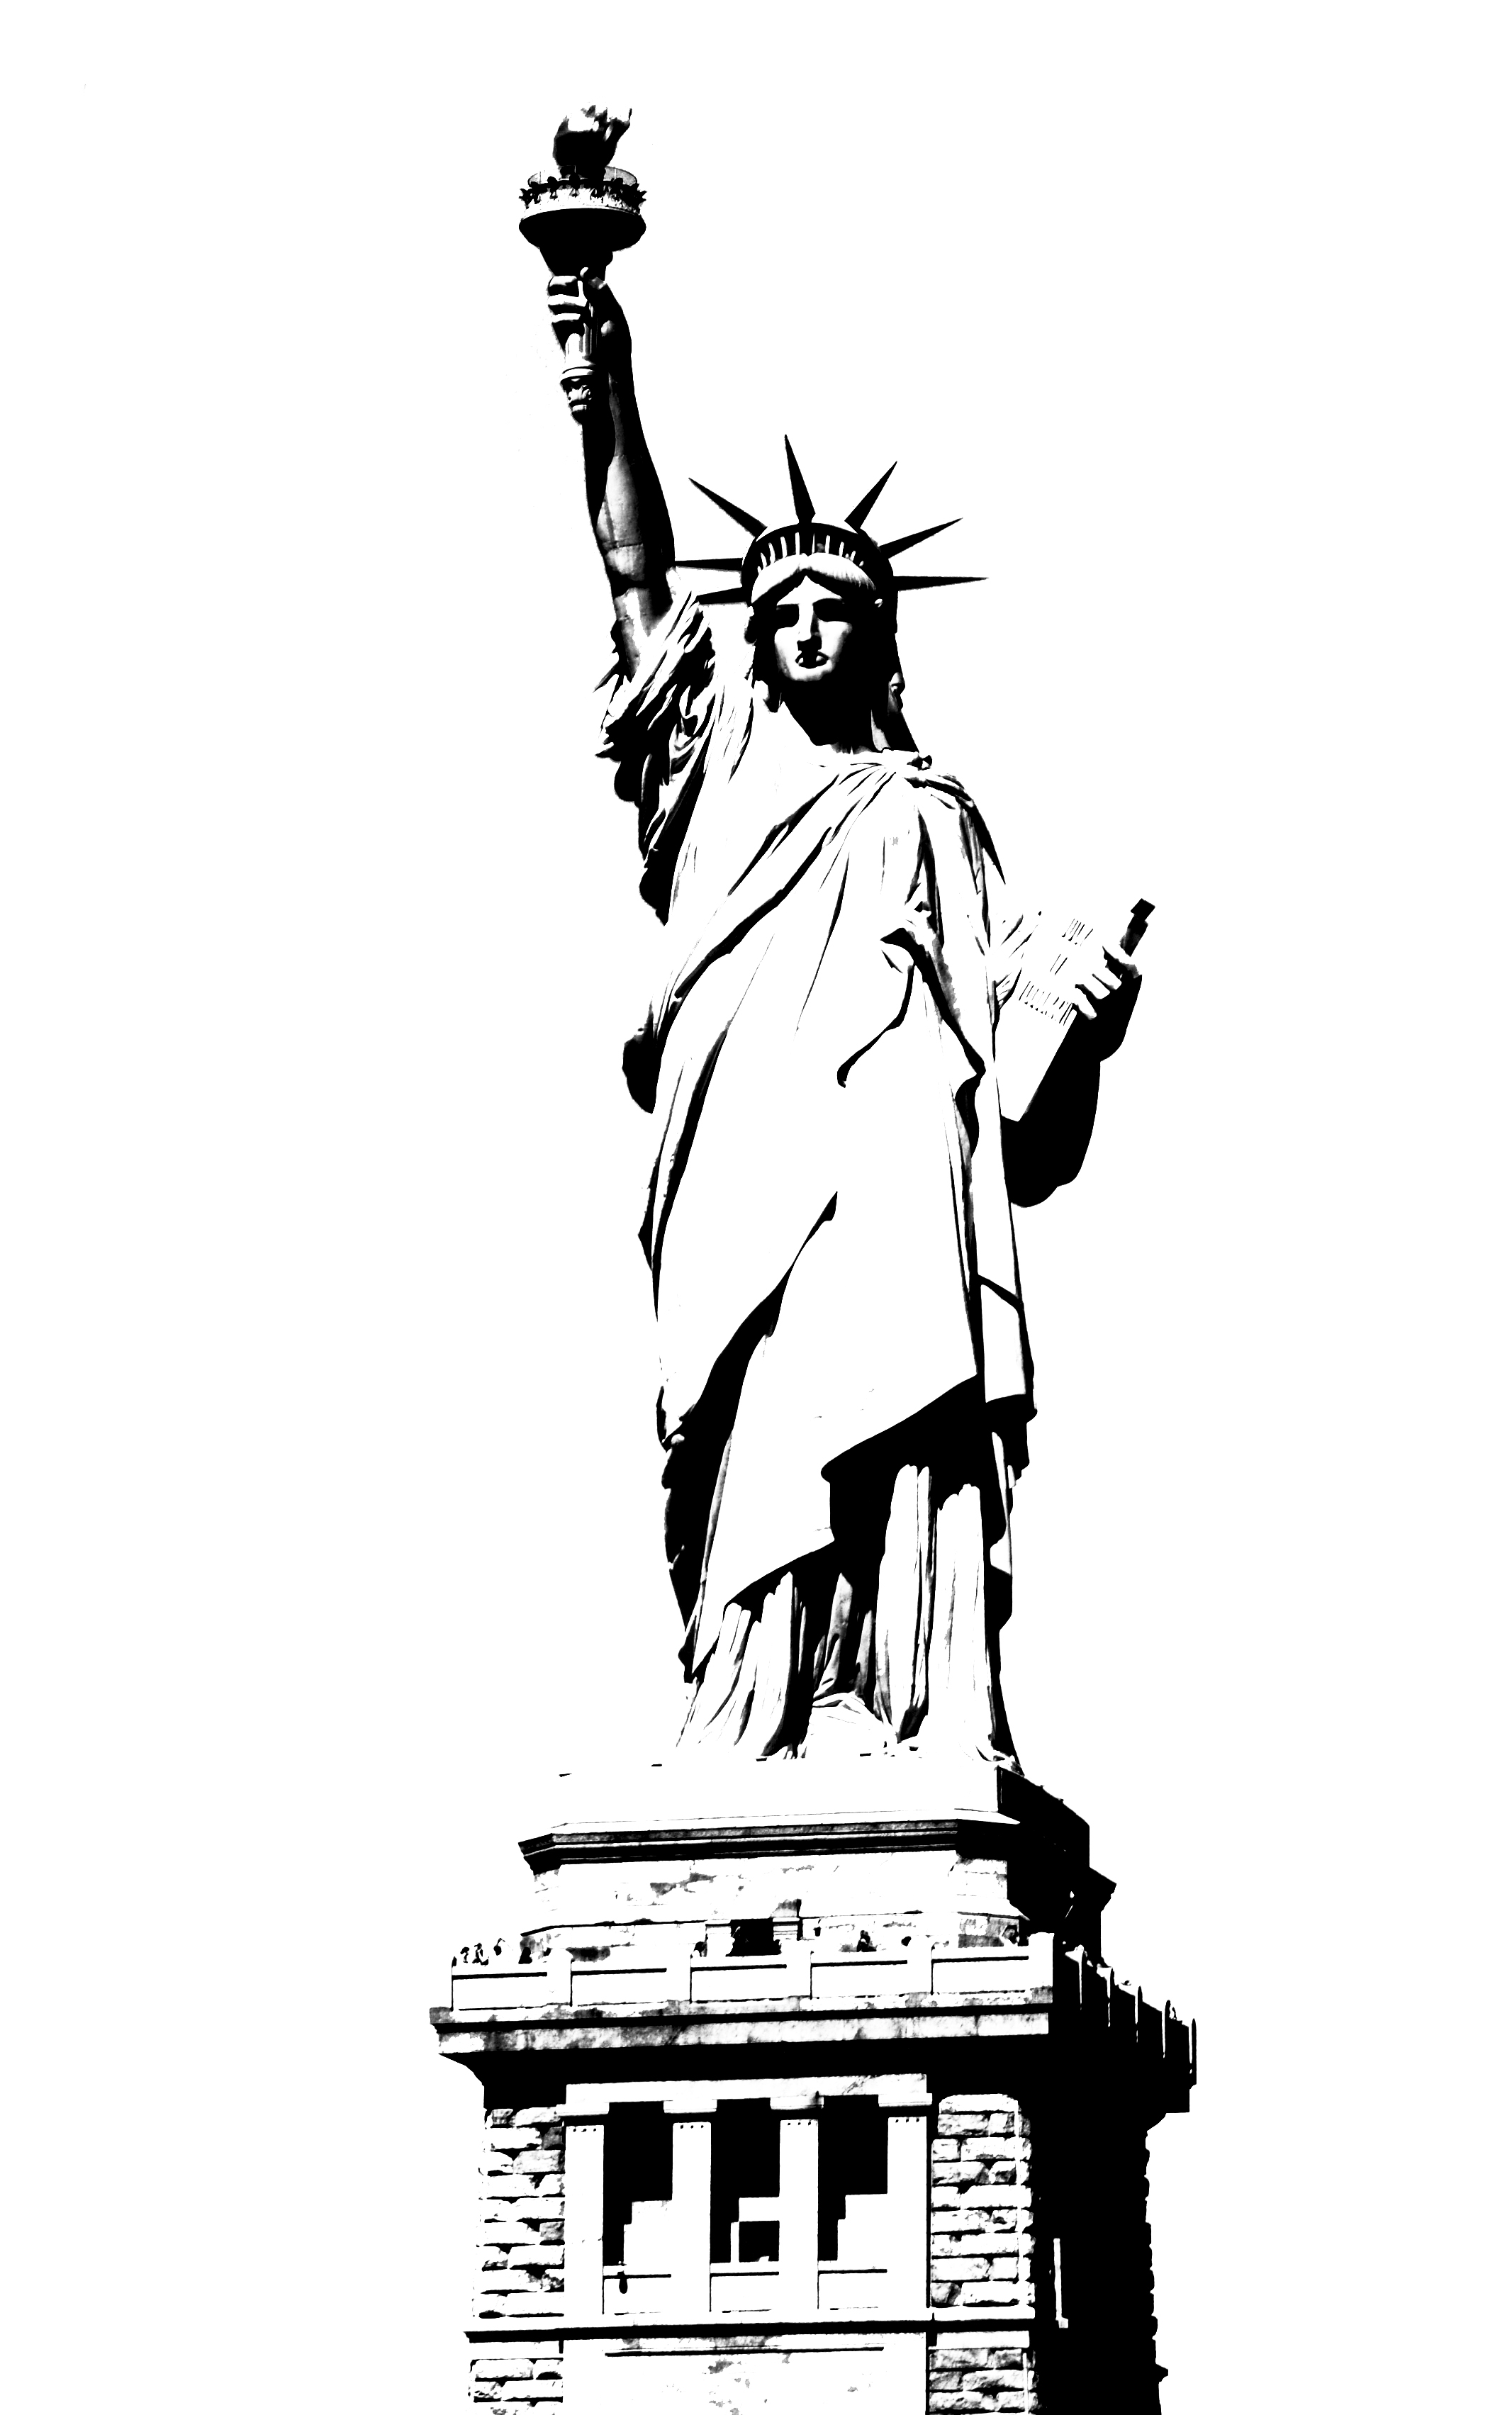 statue of liberty drawings statue of liberty torch drawing at getdrawings free download liberty of statue drawings